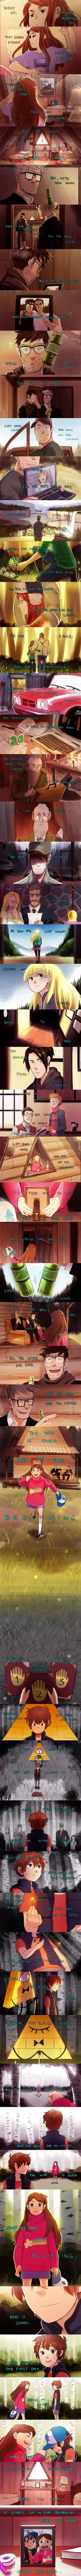 Gravity Falls - In Our Bedroom After The War by 宇宙艦隊RAMBO